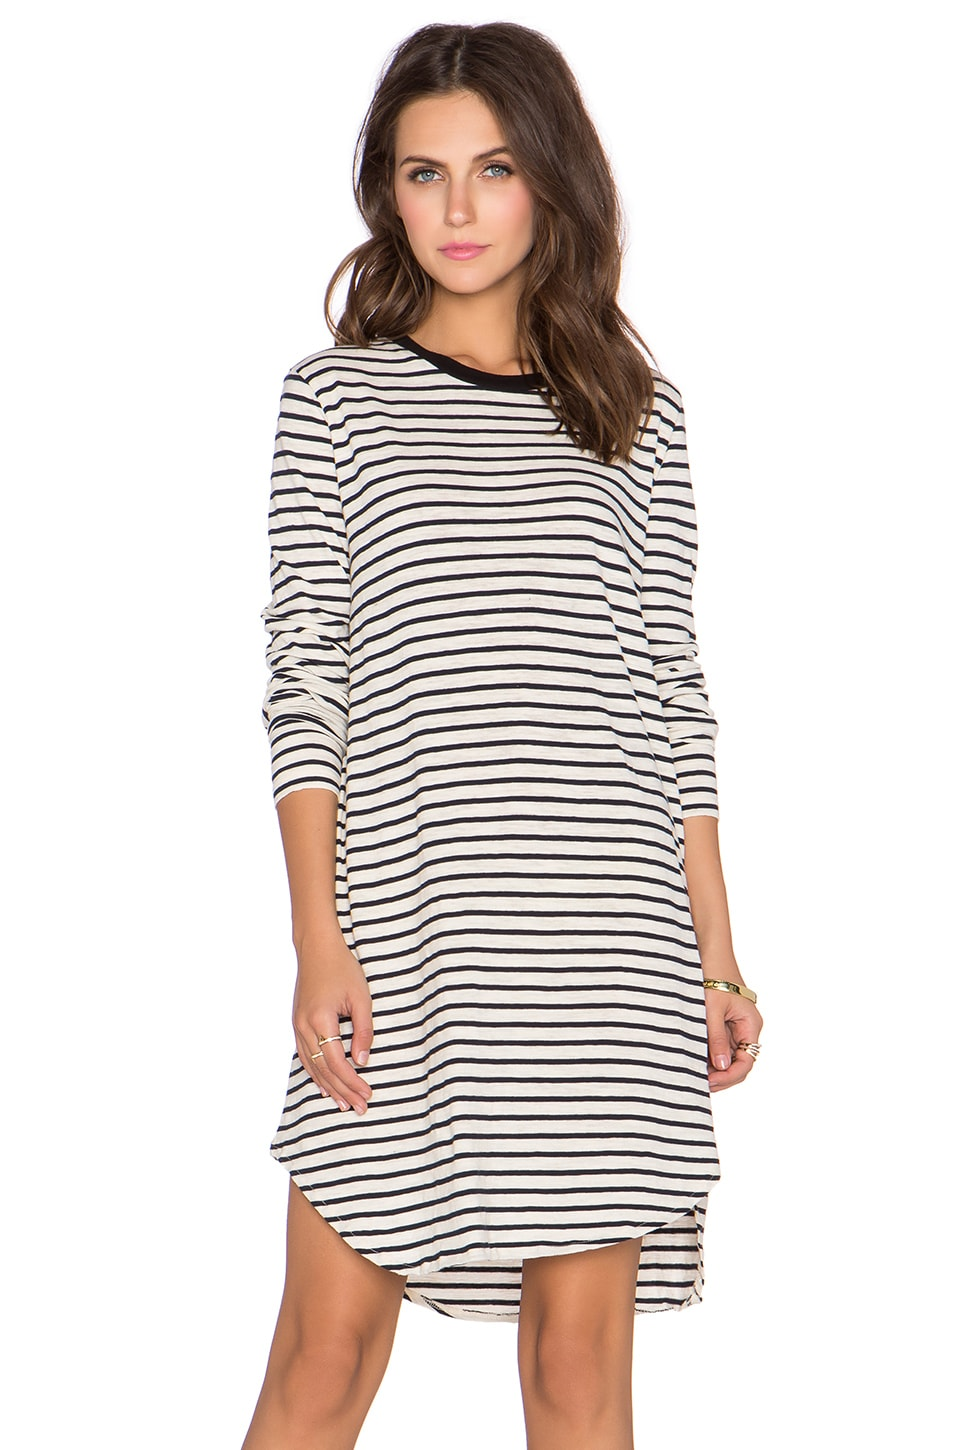 NEUW Striped Rebel Dress in White & Indigo